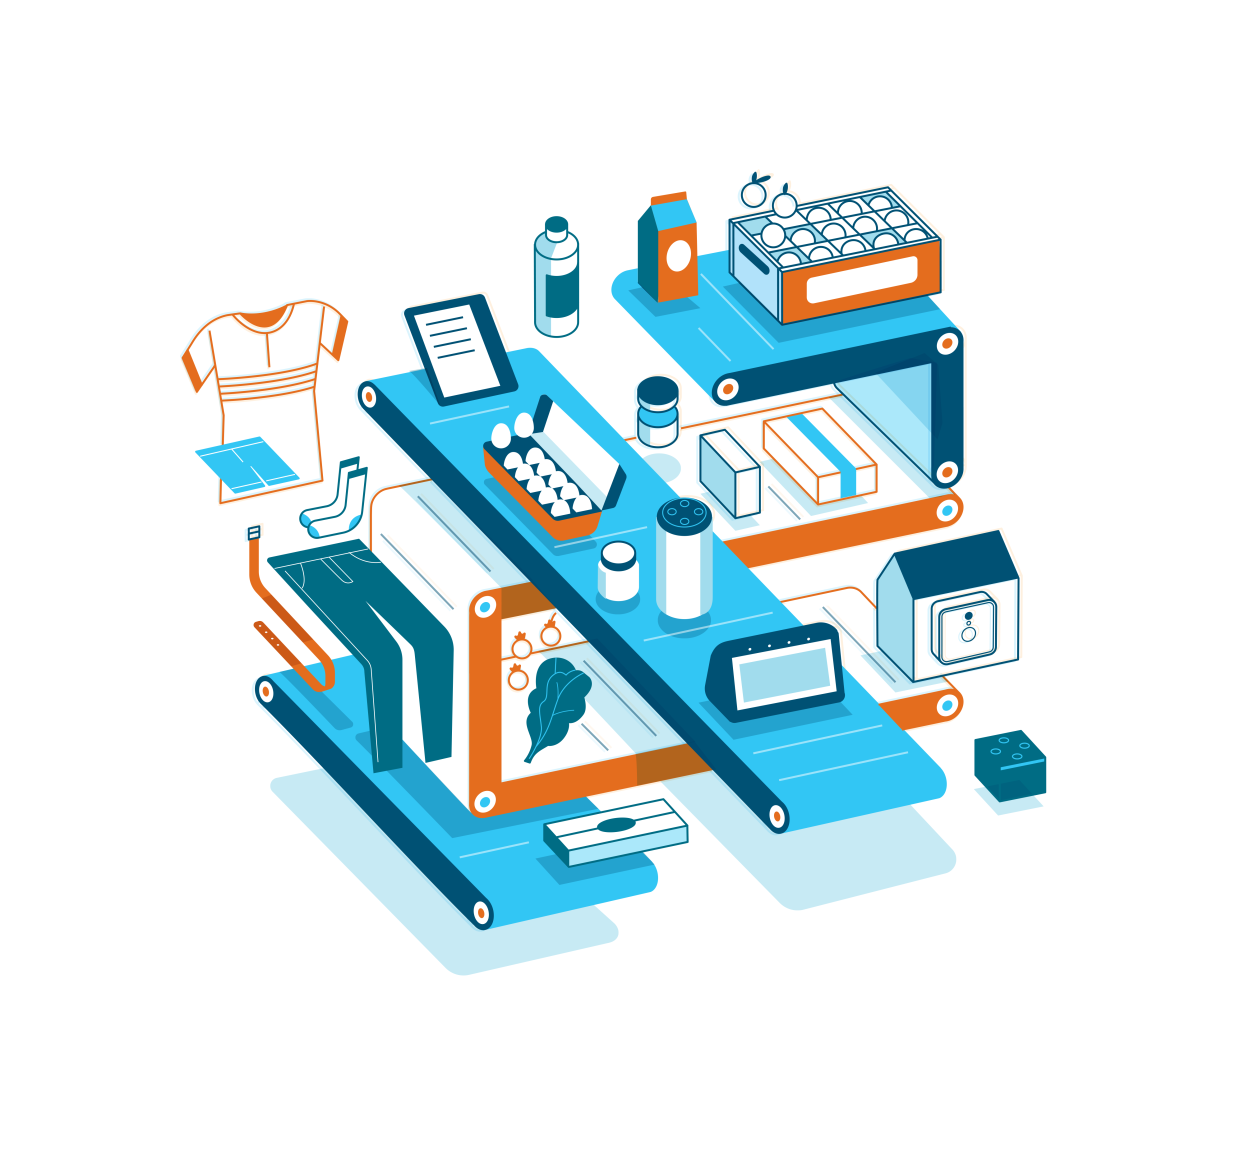 Illustration of various Amazon products, including clothing, devices, food, and house hold products.